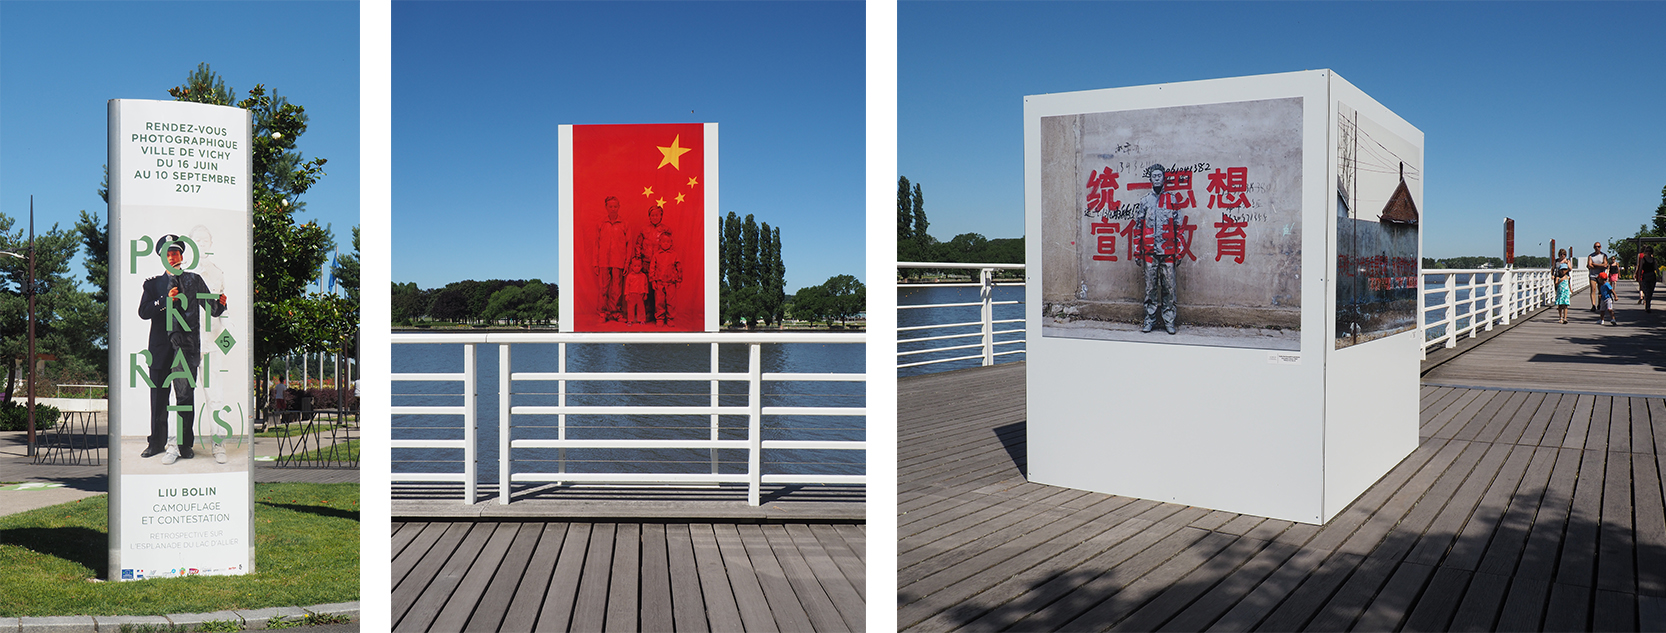 Festival Portrait(s), exhibition views along the bank of the Allier River